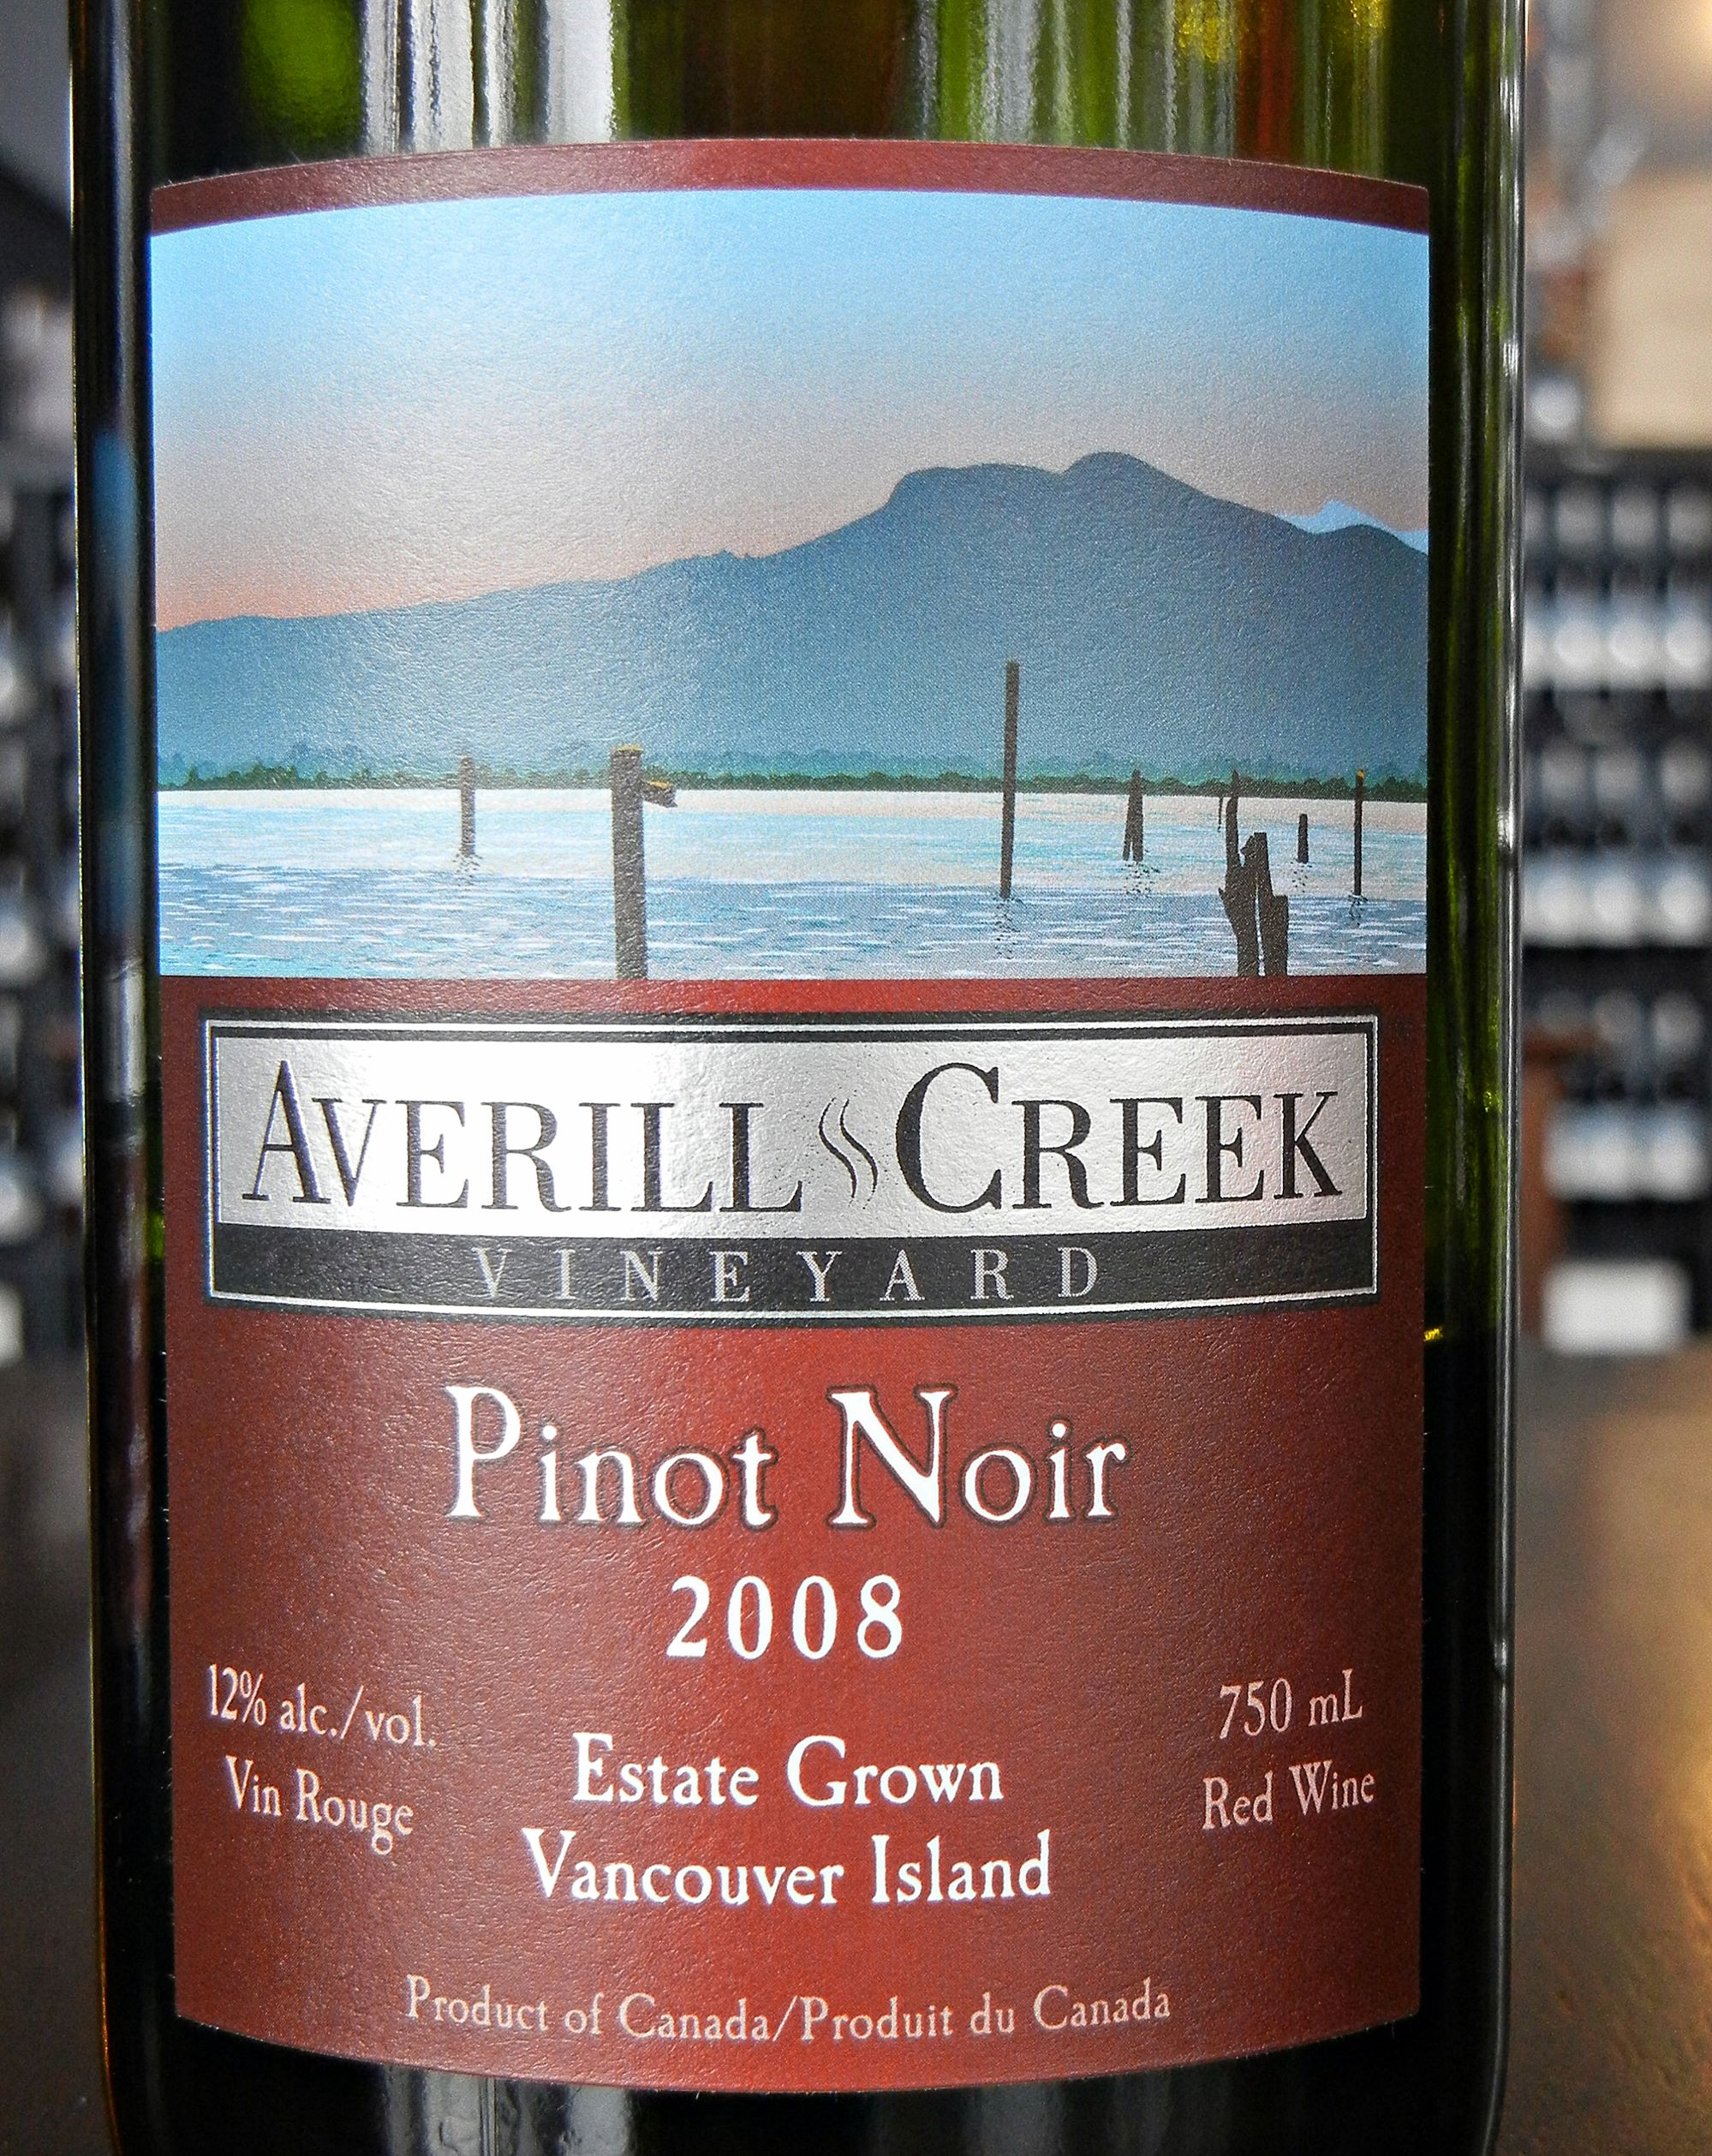 Averill Creek Pinot Noir 2008 Label - BC Pinot Noir Tasting Review 24